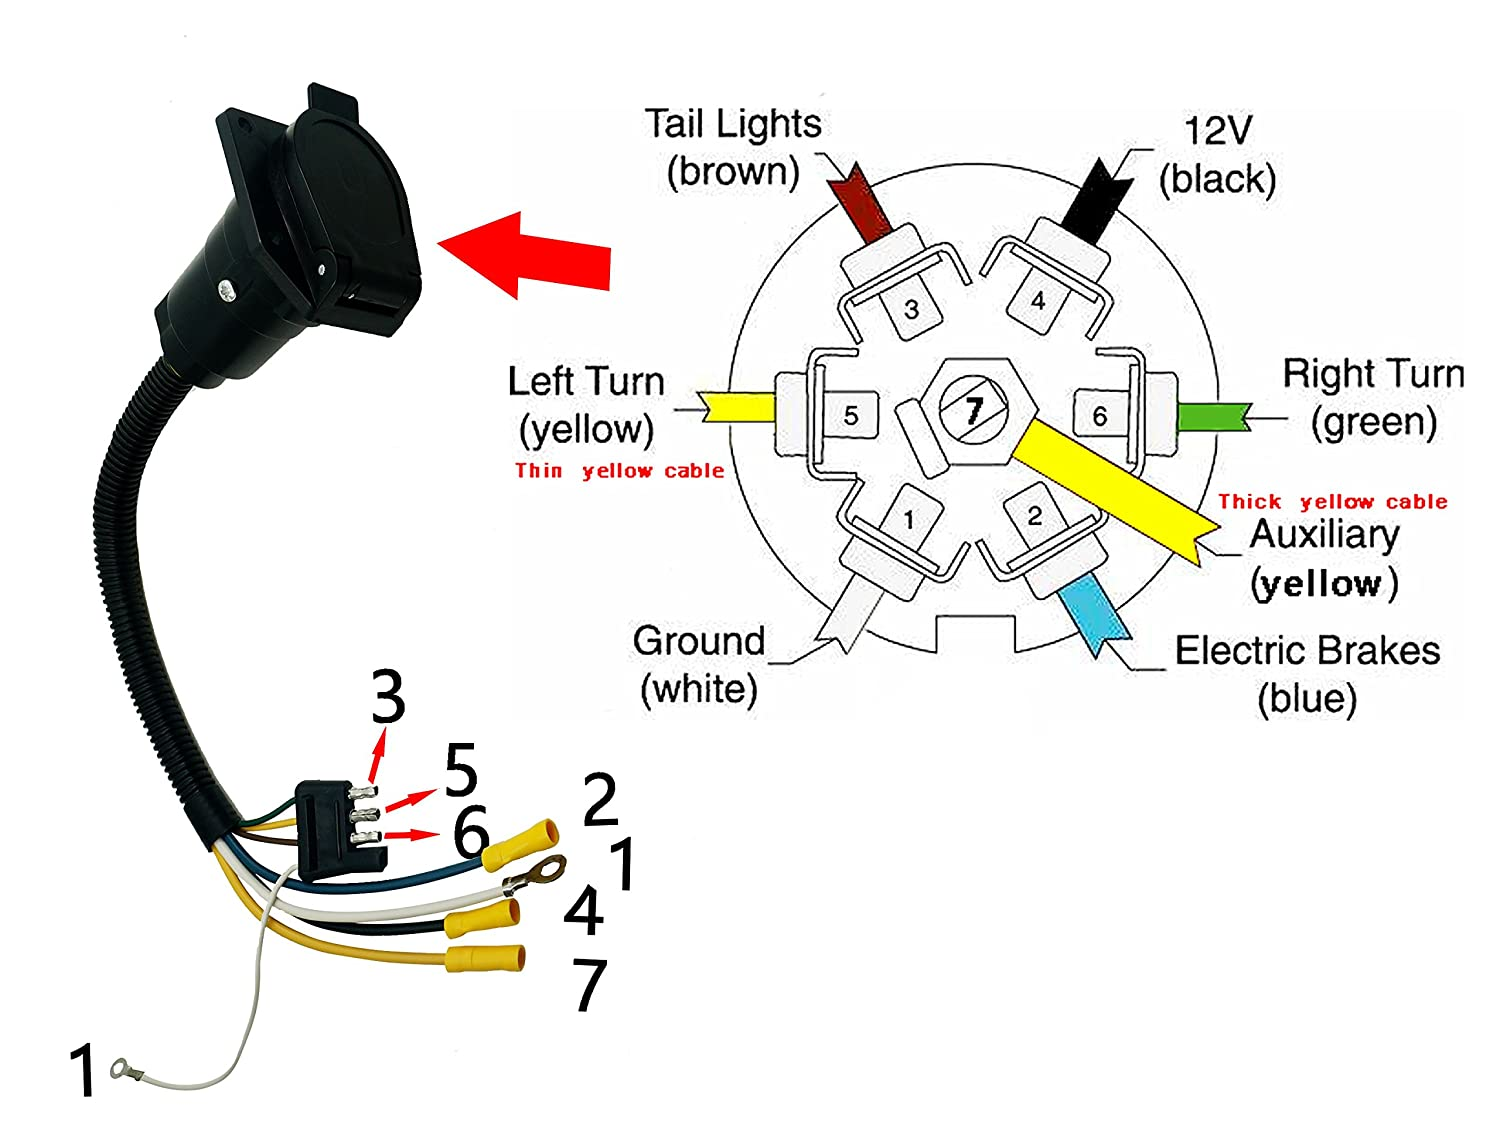 7 pin wire colors, 7 pin trailer lights, 96 gmc suburban trailer harness, 7 pin tow wiring, 7 pin trailer hitch, 7 pin wiring diagram for semi truck, 7 pin cable, 7 pin ignition switch, on 7 pin round 4 trailer wiring harness